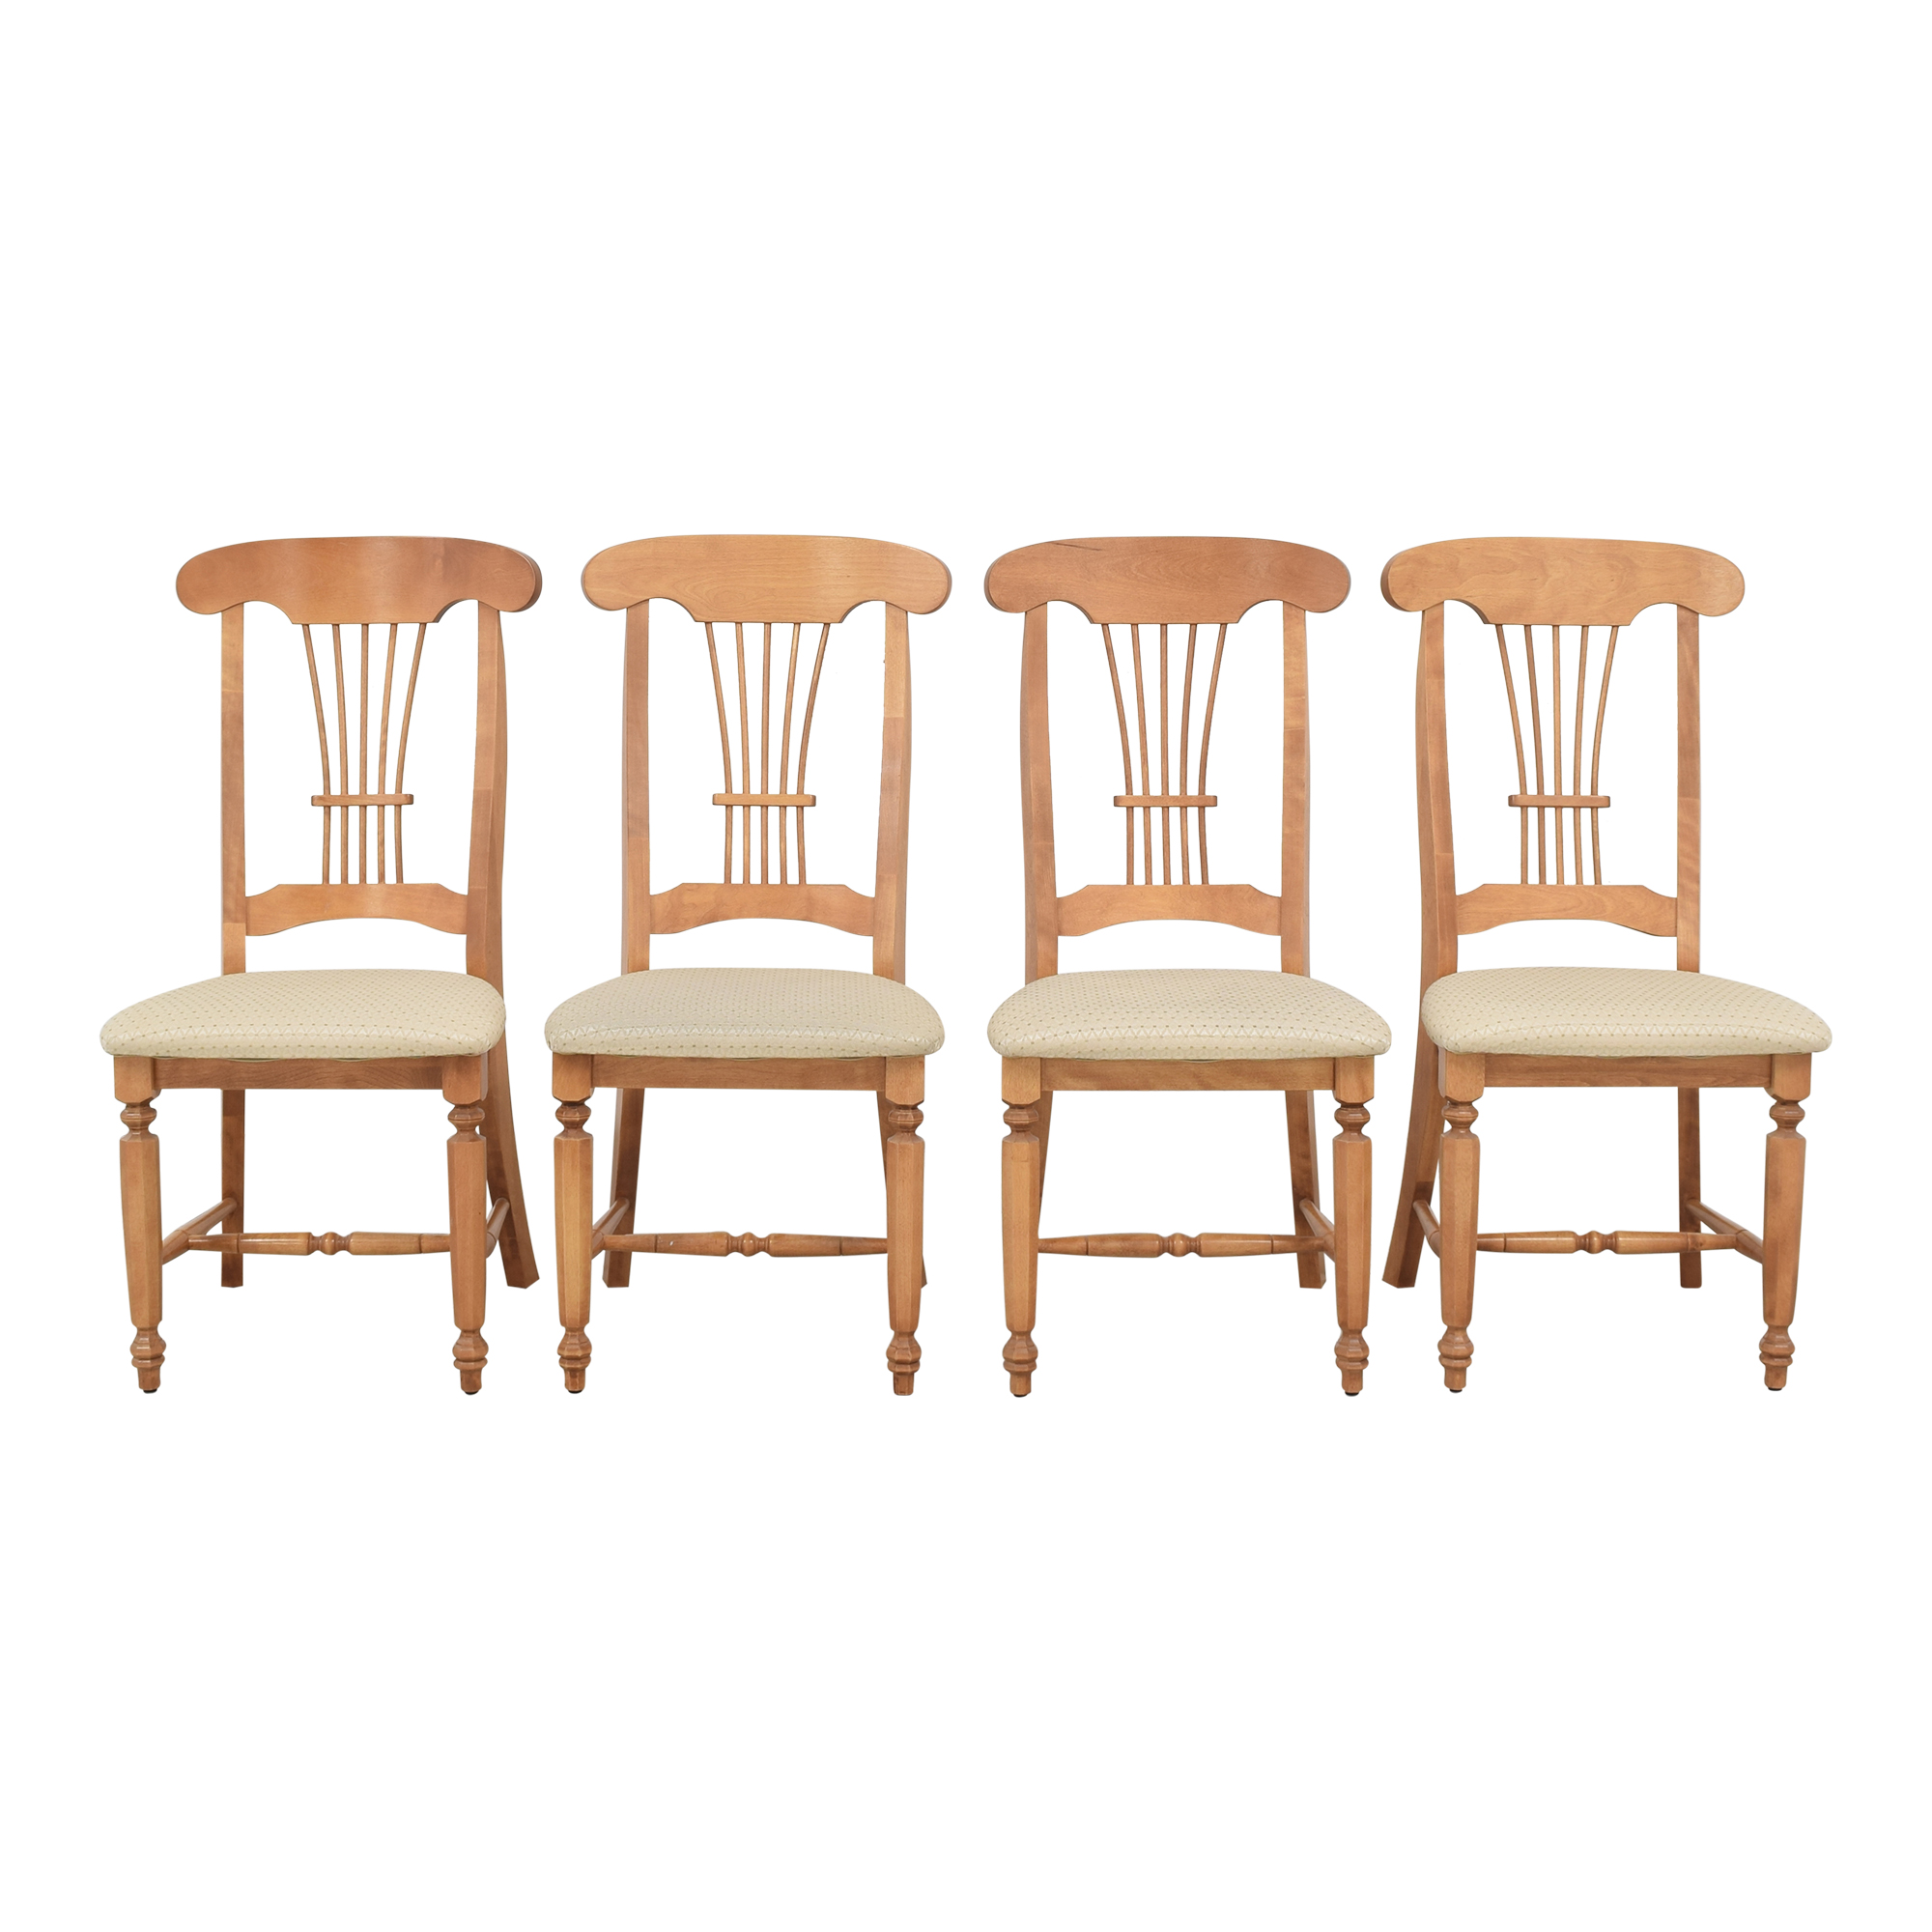 Canadel Upholstered Dining Chairs / Dining Chairs